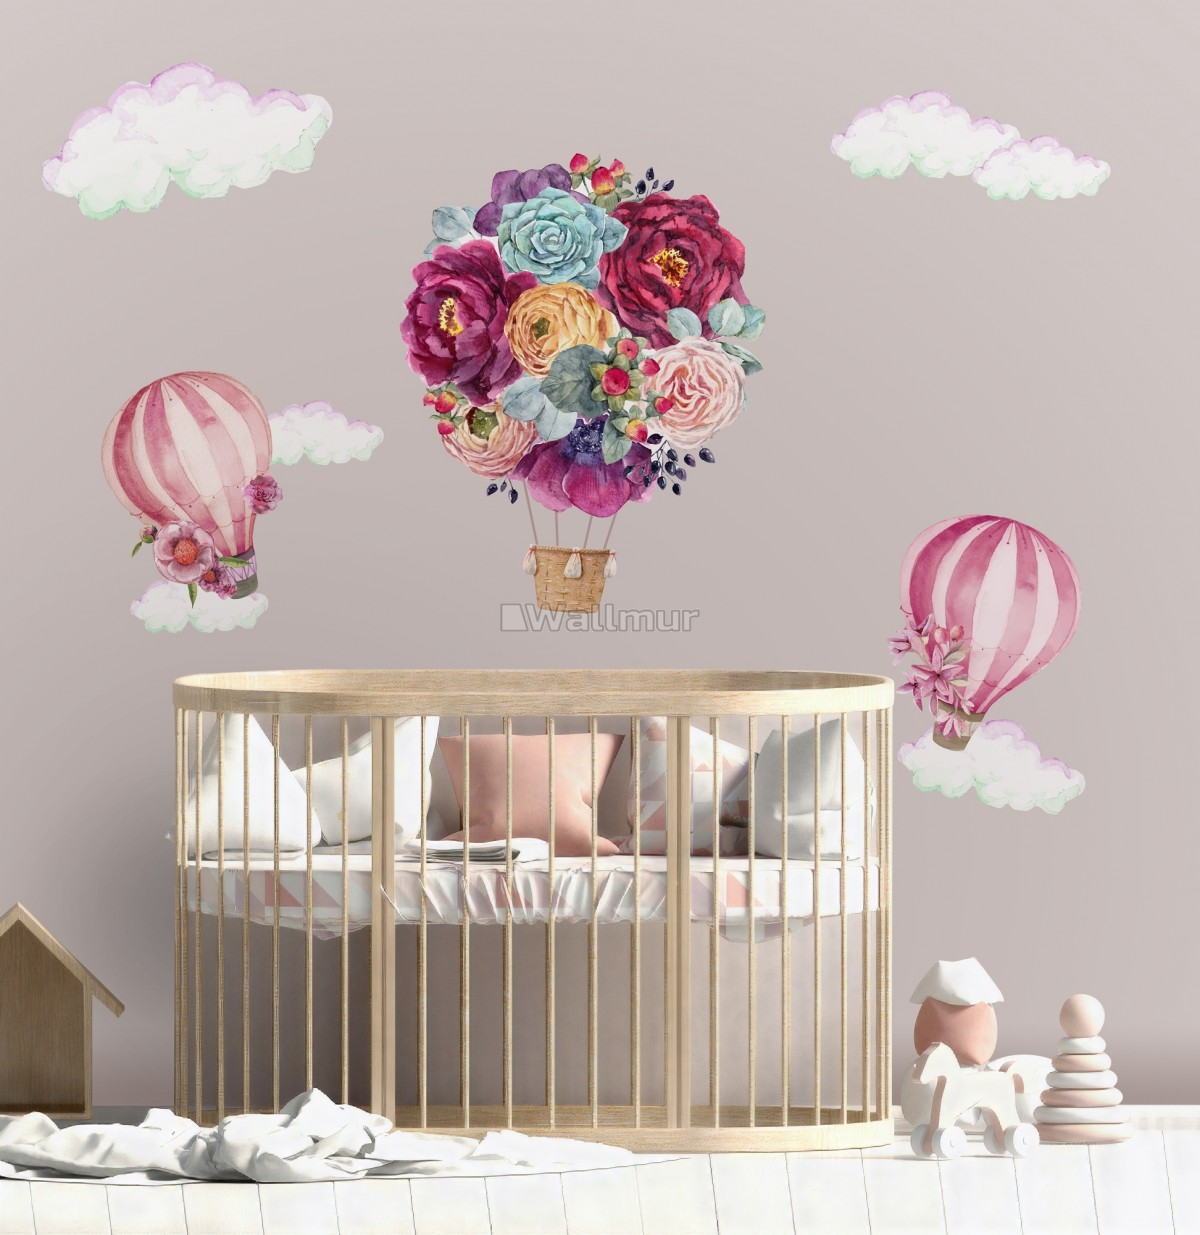 Colorful Floral Bouqet Hot Air Balloon and Pink Clouds Wall Decal Sticker